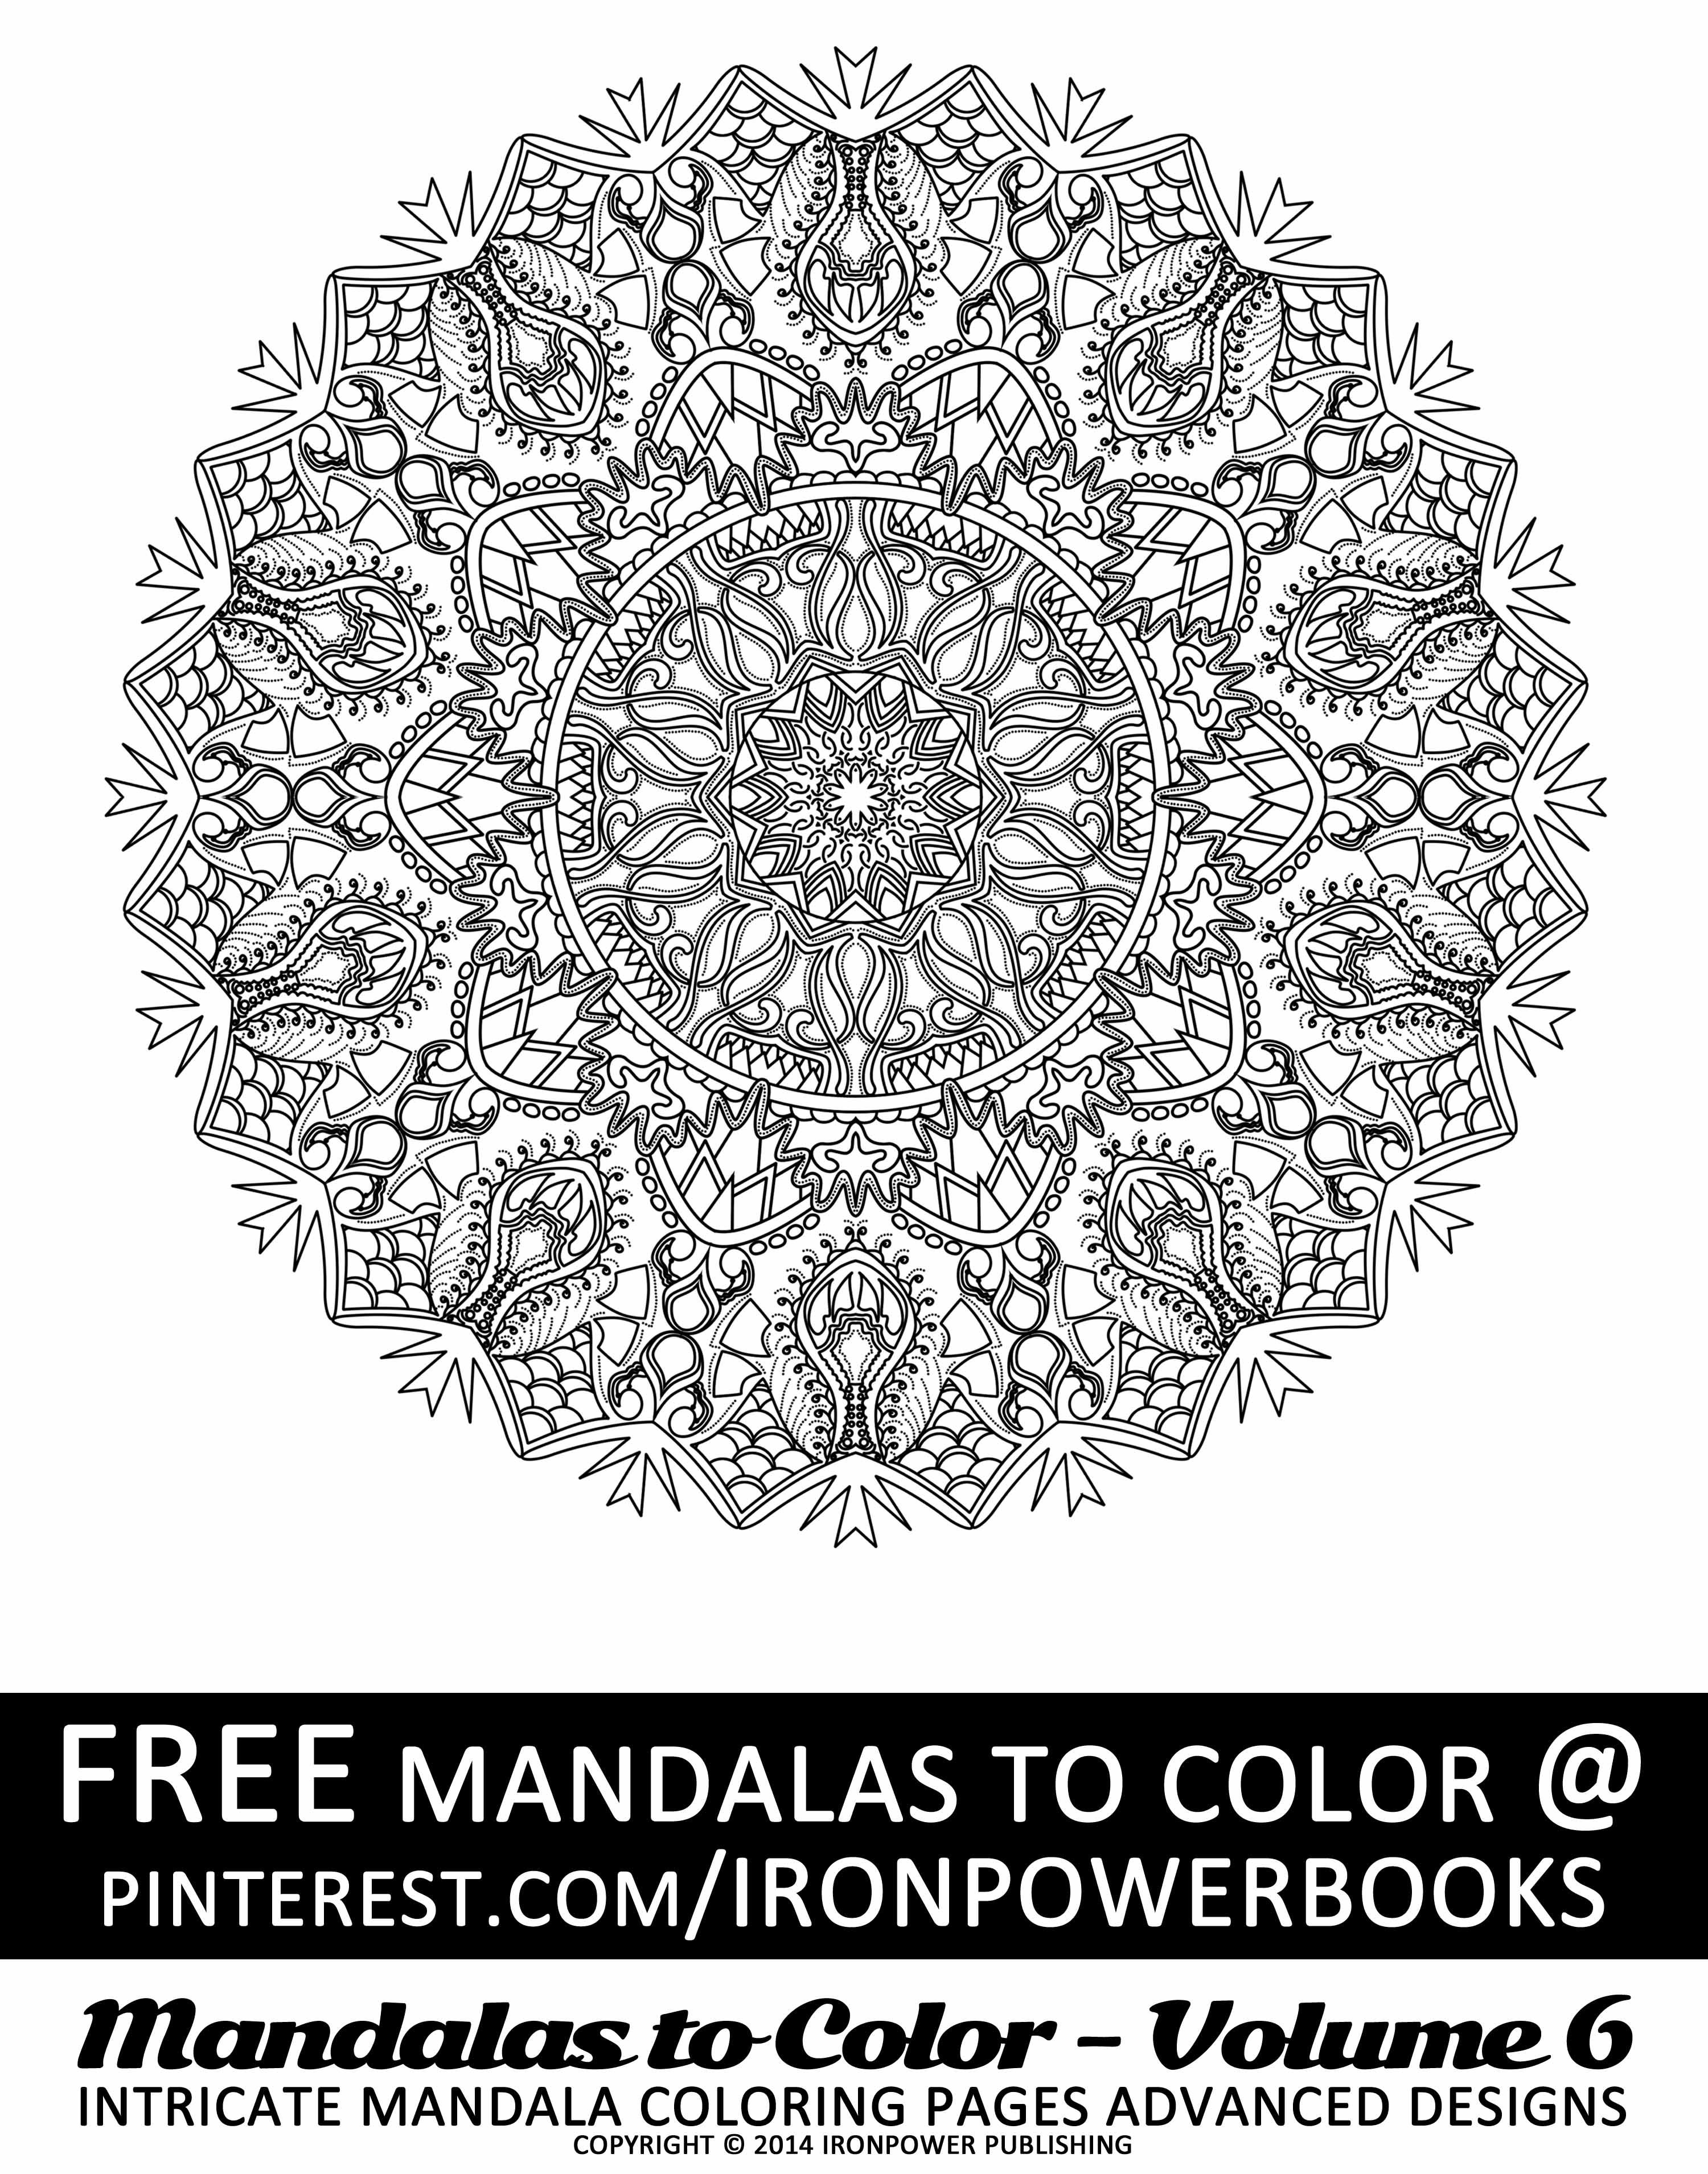 Free Intricate Advanced Mandala Design From Ironpowerbooks Boards This Pin Is In High Resolut Mandala Coloring Pages Coloring Pages Mandala Coloring Books